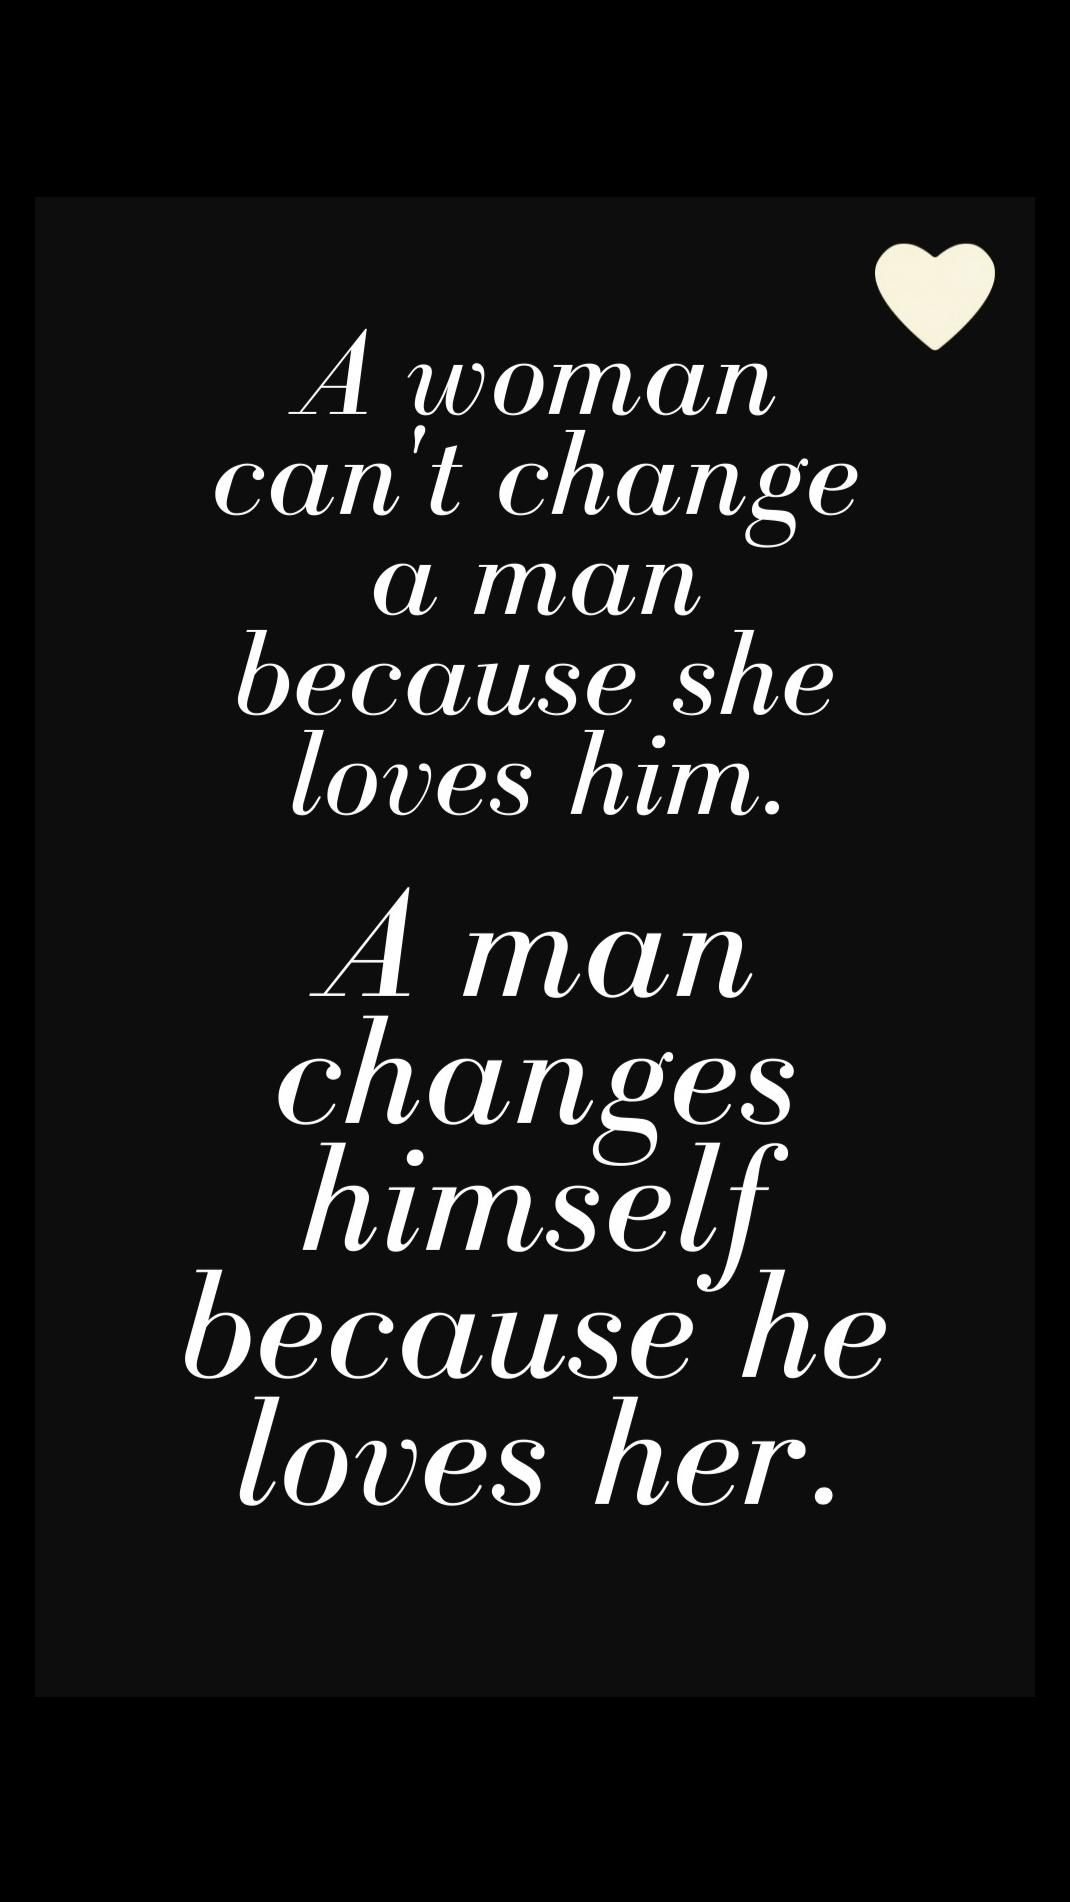 Daily quotes on relationships